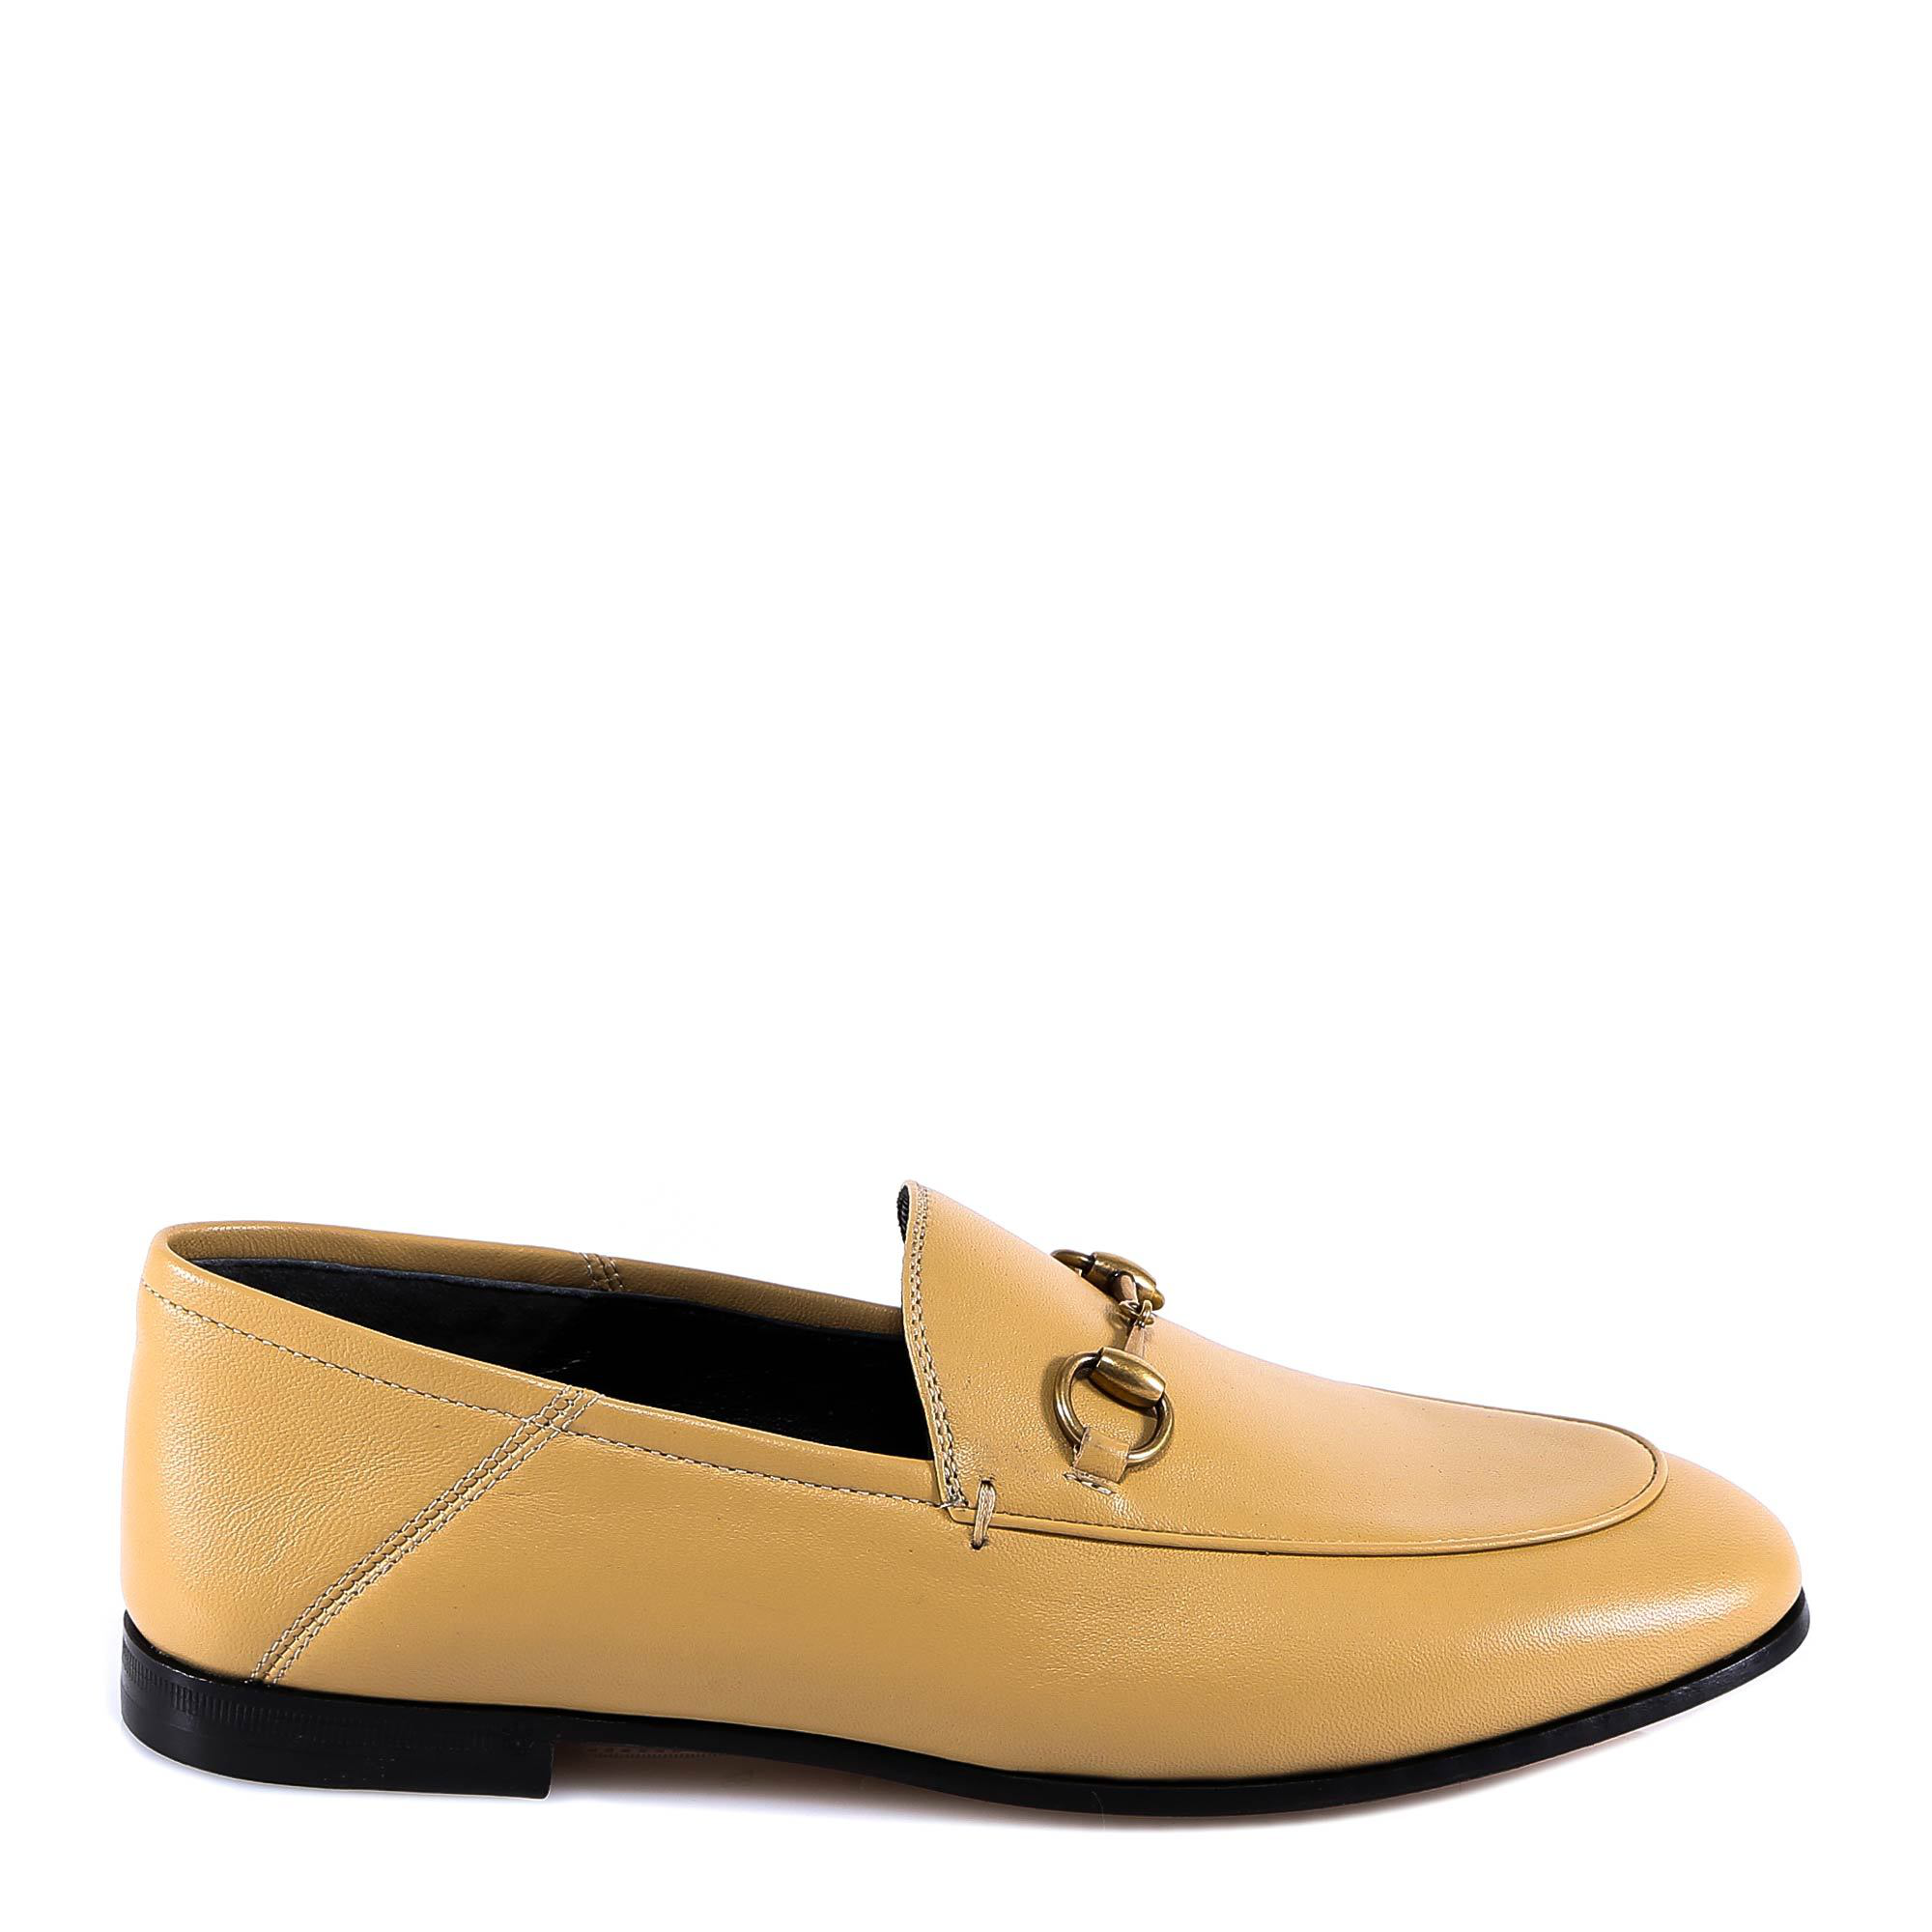 0f754a0a451 Gucci Brixton Horsebit-Detailed Leather Collapsible-Heel Loafers In 2652  Beige